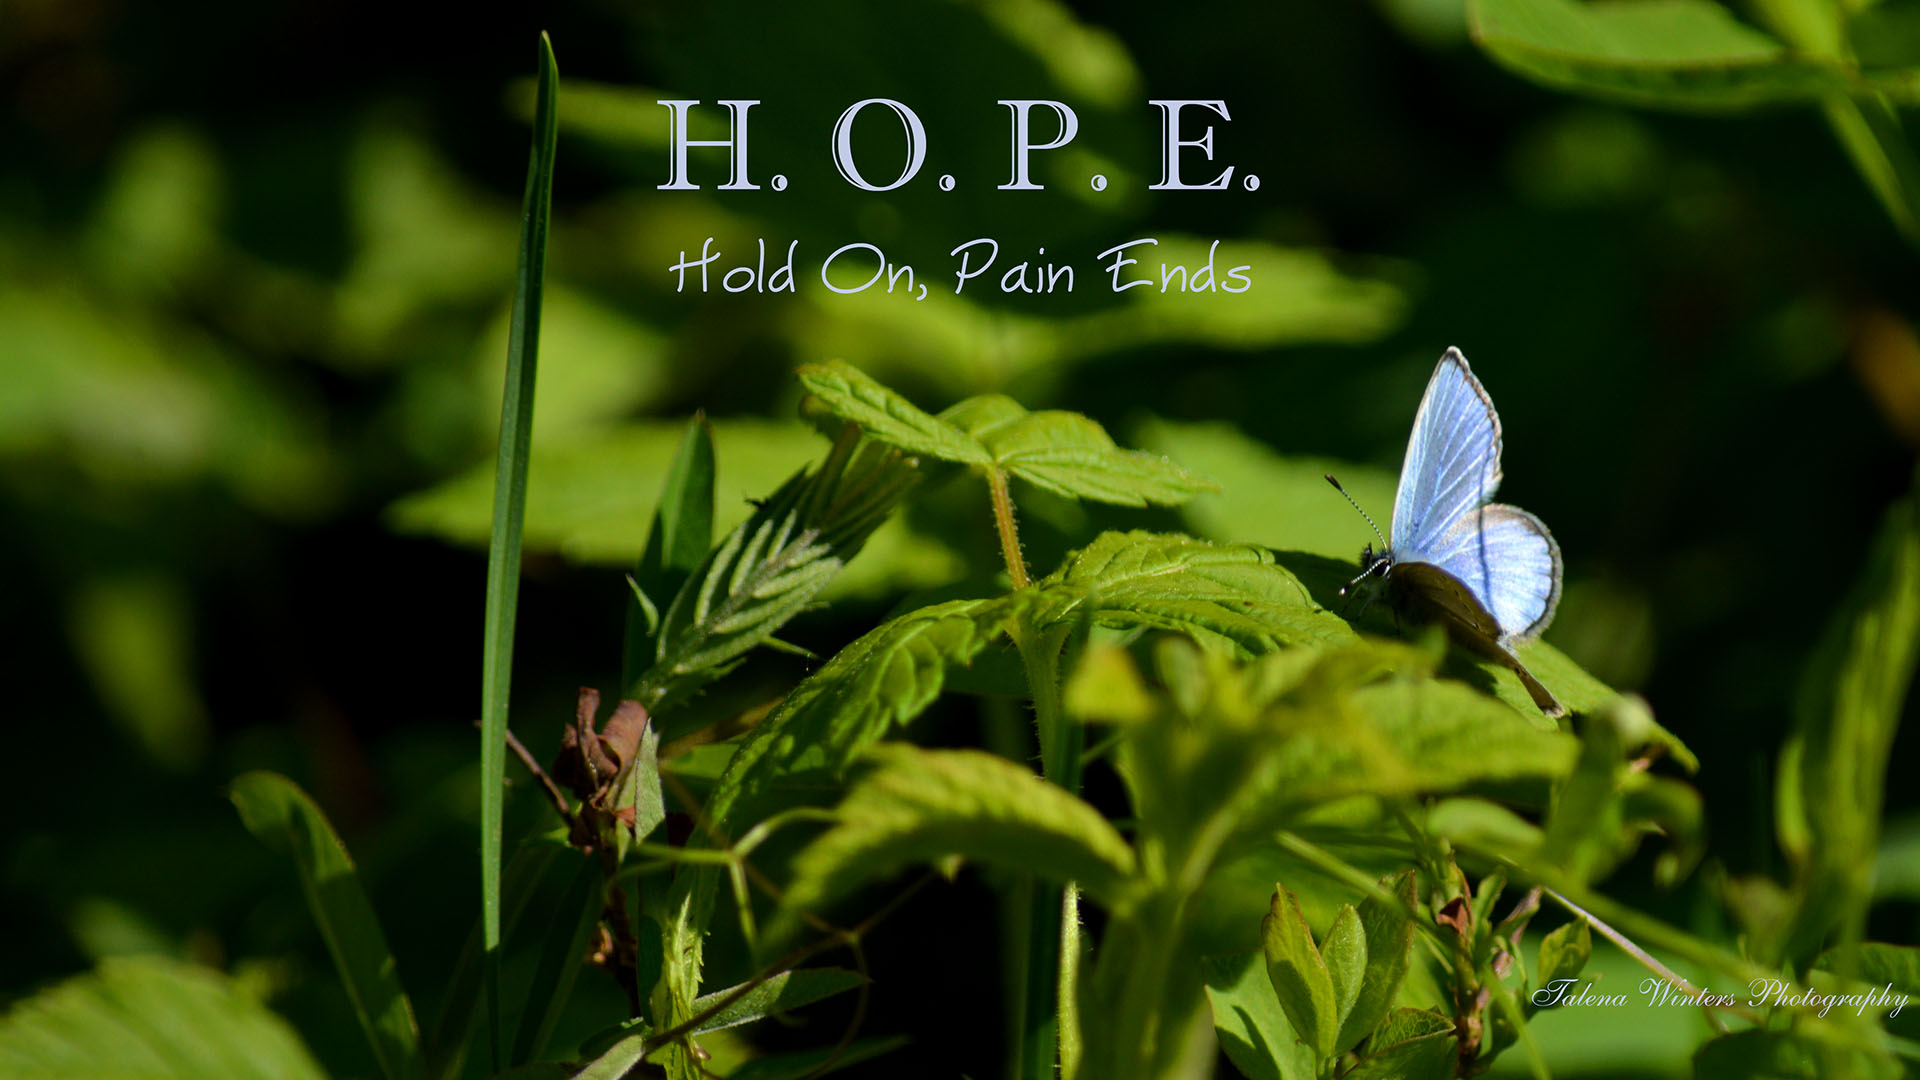 HOPE - Hang On, Pain Ends with Blue Azure butterfly wallpaper by Talena Winters. www.talenawinters.com